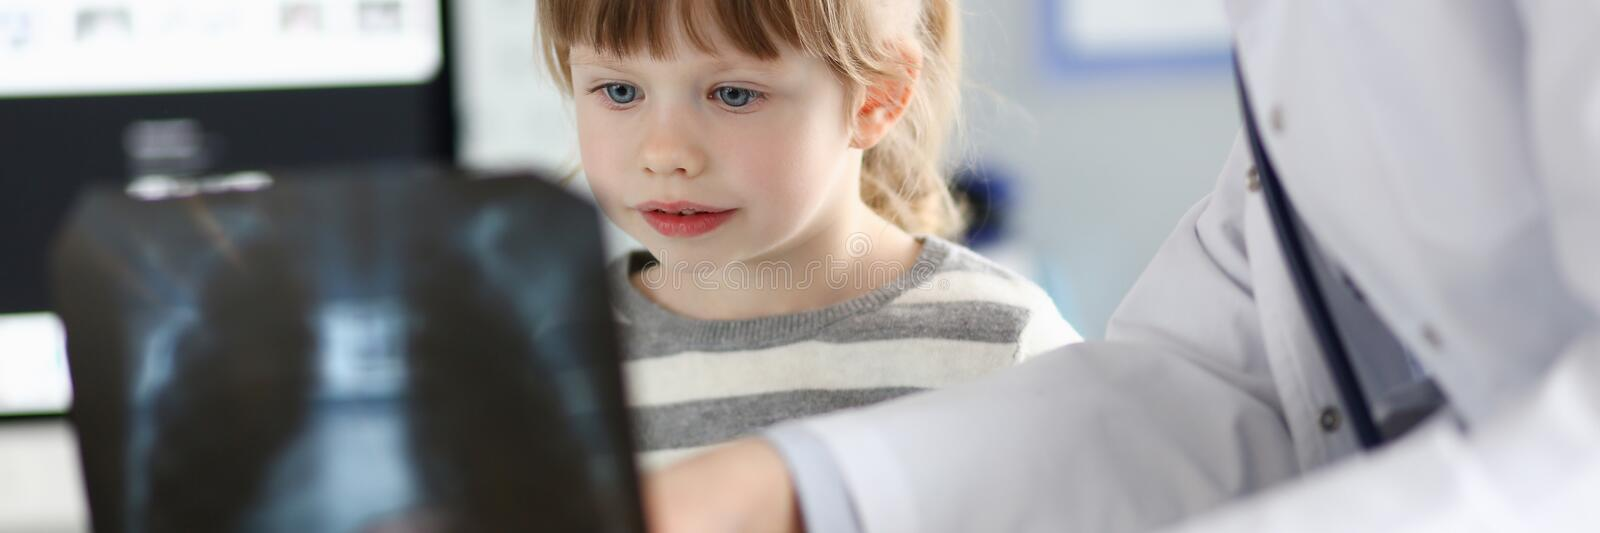 Cute little girl talking with gp looking at xray picture during consultation royalty free stock photos